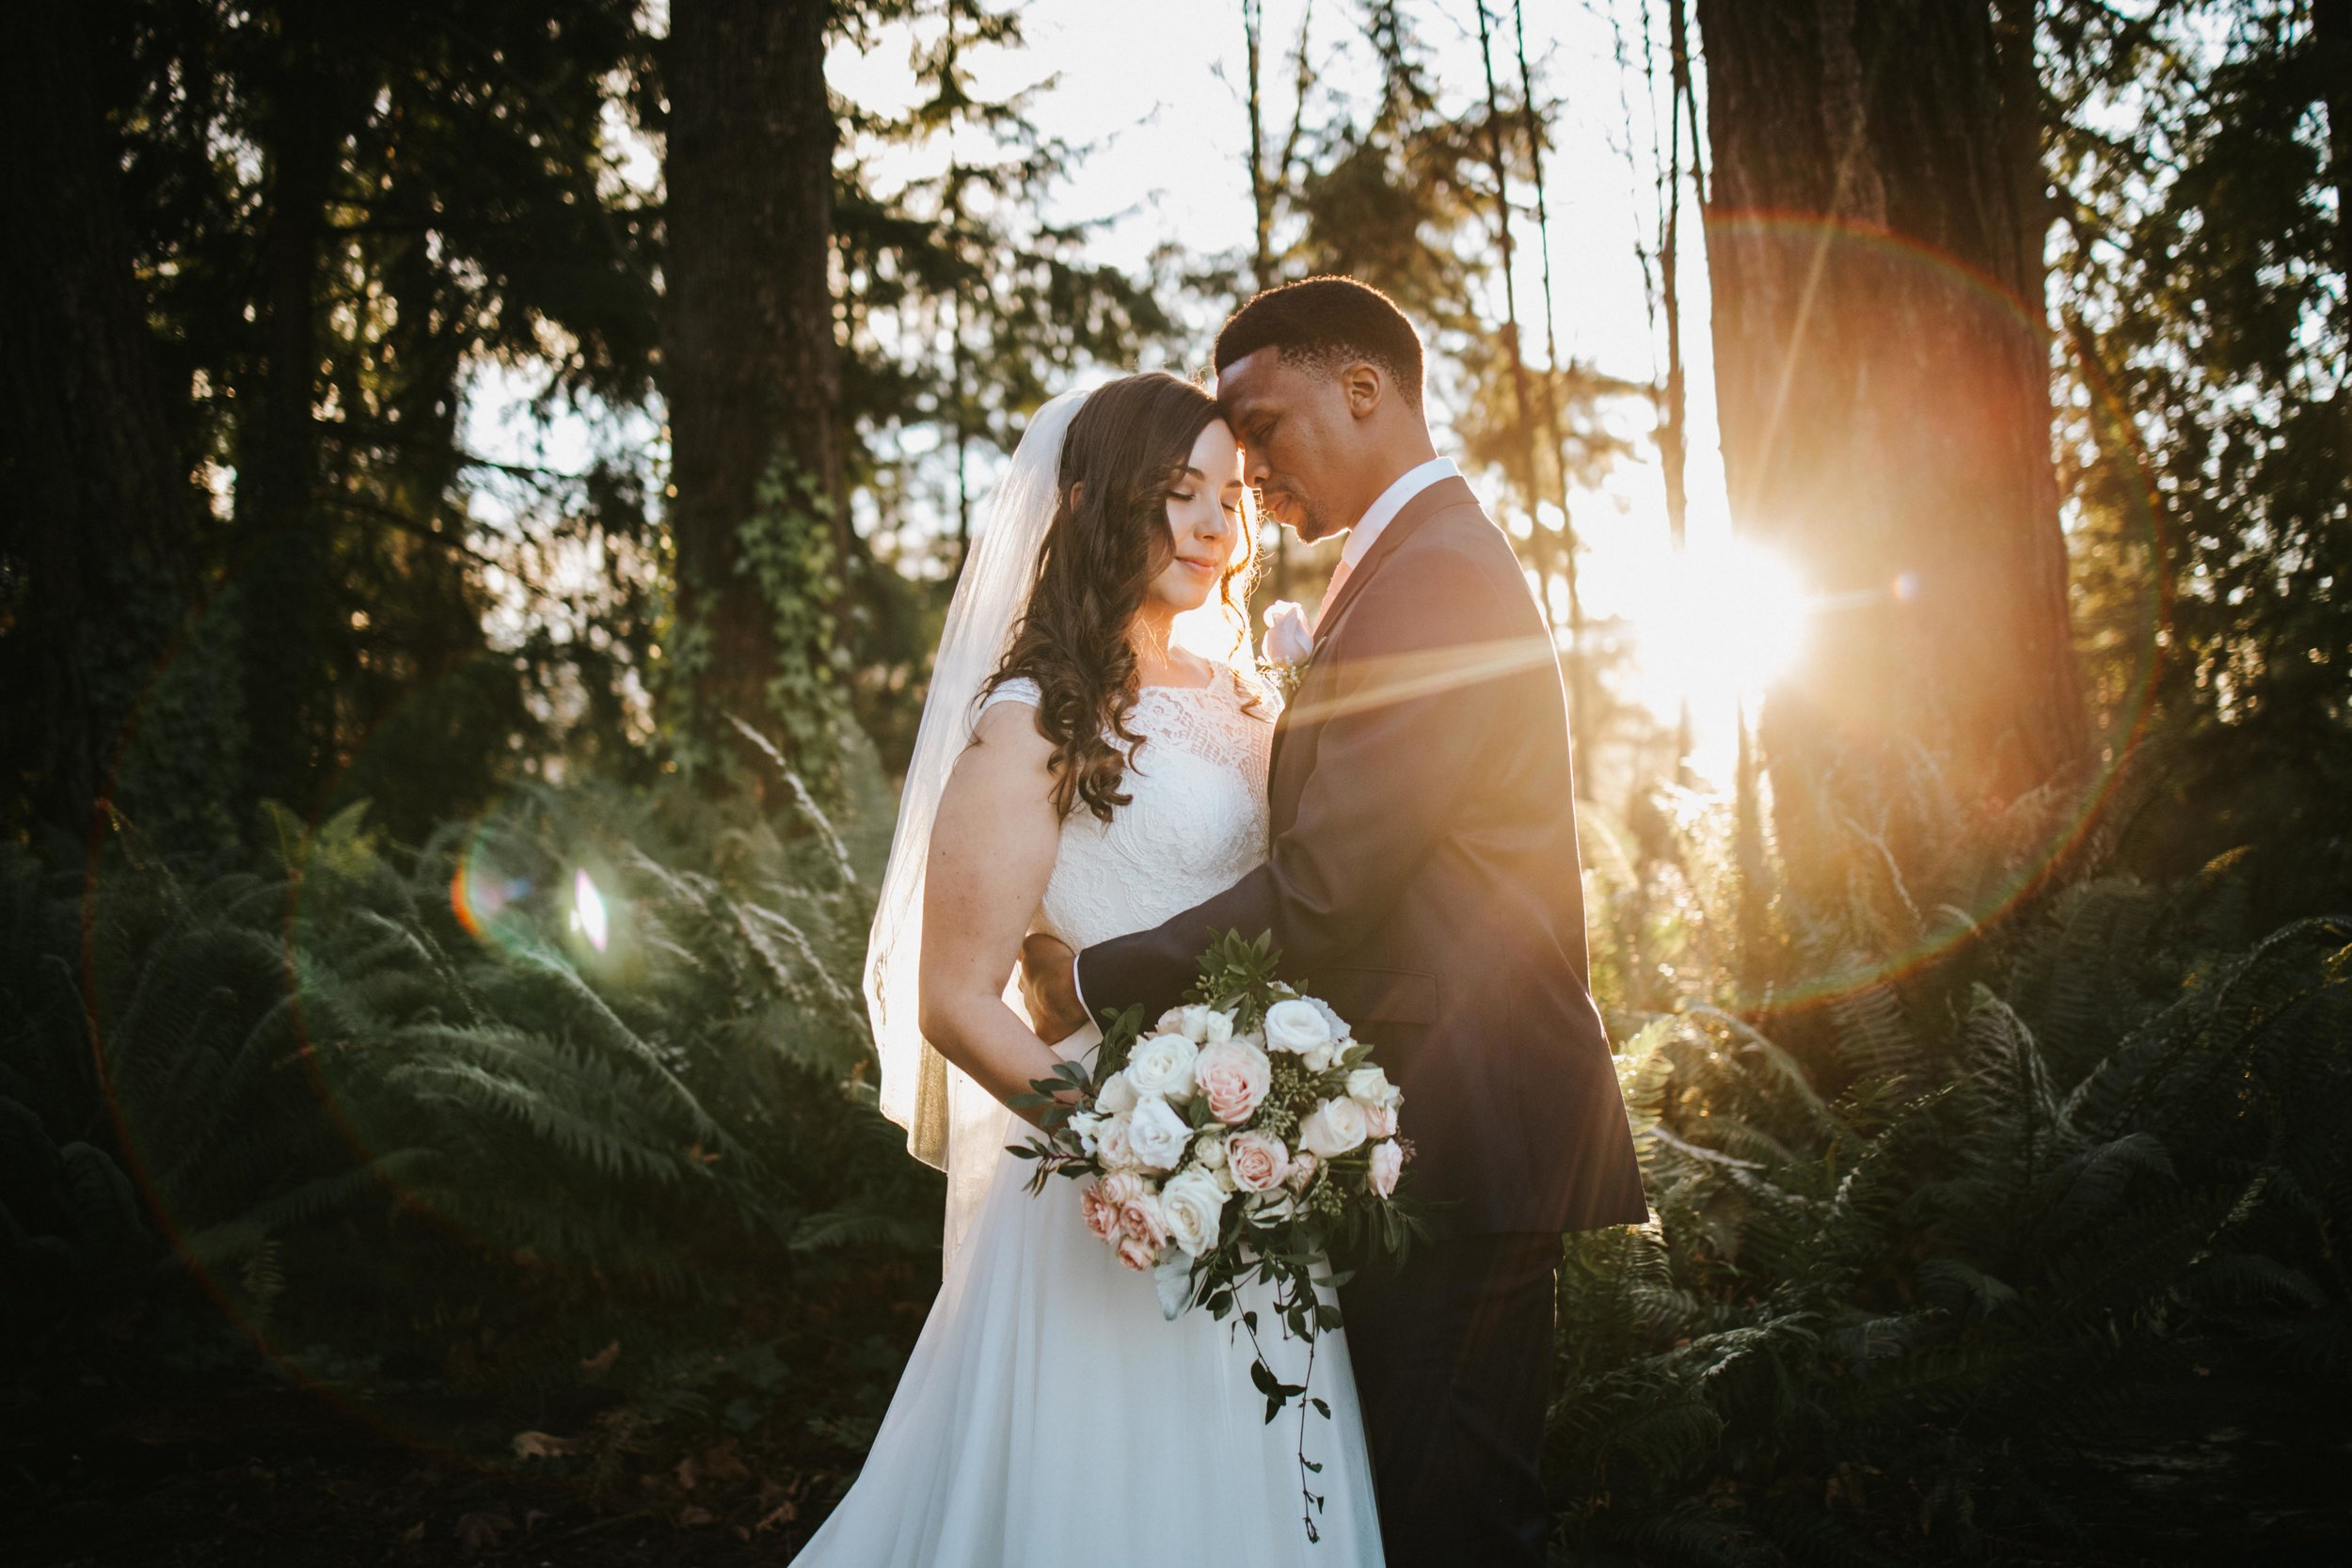 JACQUELINE AND TSHIRE [YALETOWN WEDDING]  December 30, 2018  Location: Brix and Mortar Restaurant, Yaletown  Photoshoot: Coal Harbour, Stanley Park & Yaletown  Photography: Rf Weddings  Photos shot on: Canon EOS R, Canon 1DX, Canon MIV